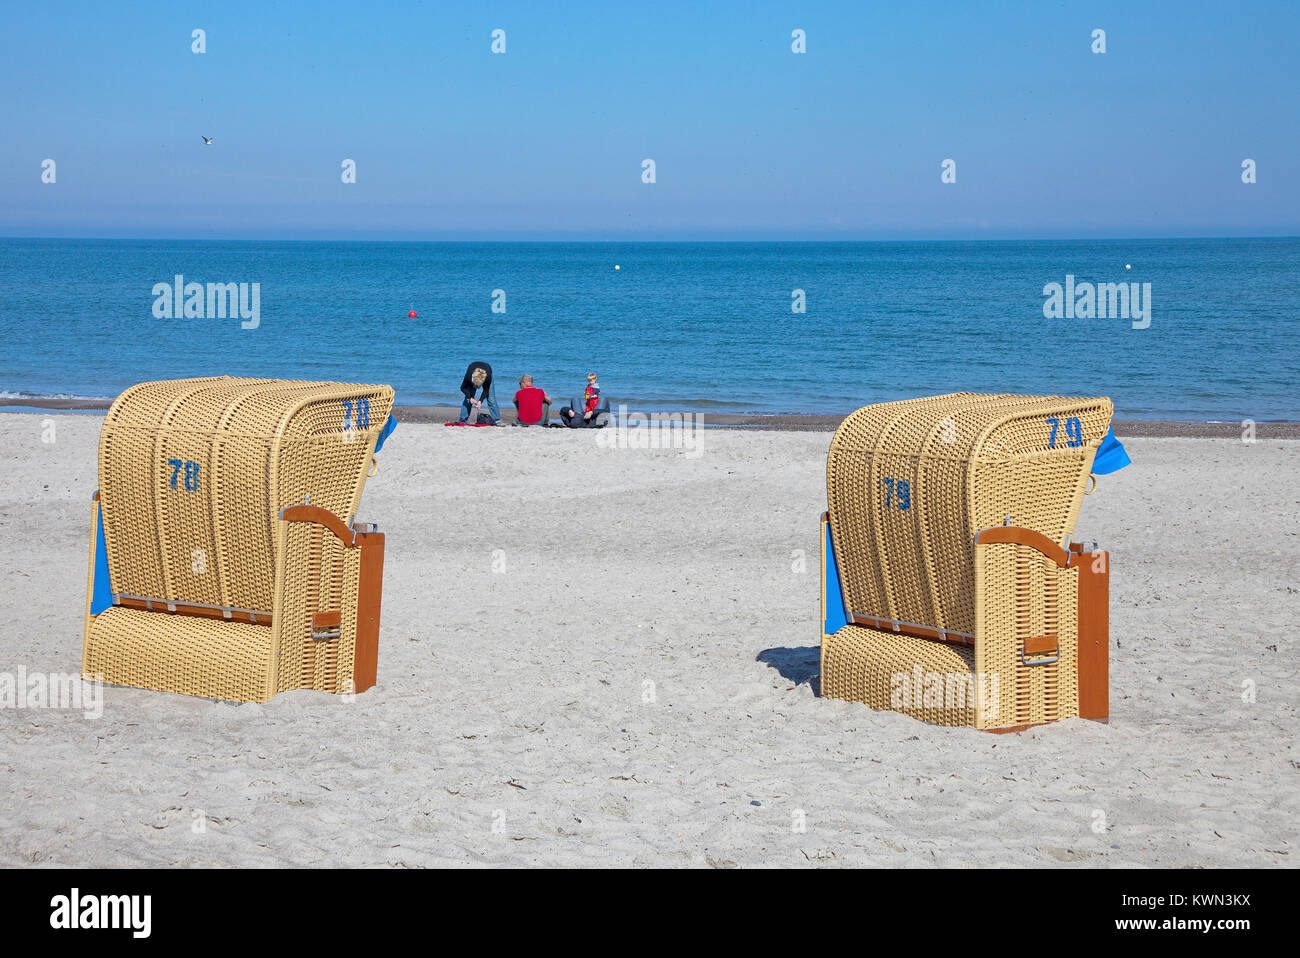 Two beach chairs at the beach of Dierhagen, Fishland, Mecklenburg-Western Pomerania, Baltic sea, Germany, Europe - Stock Image